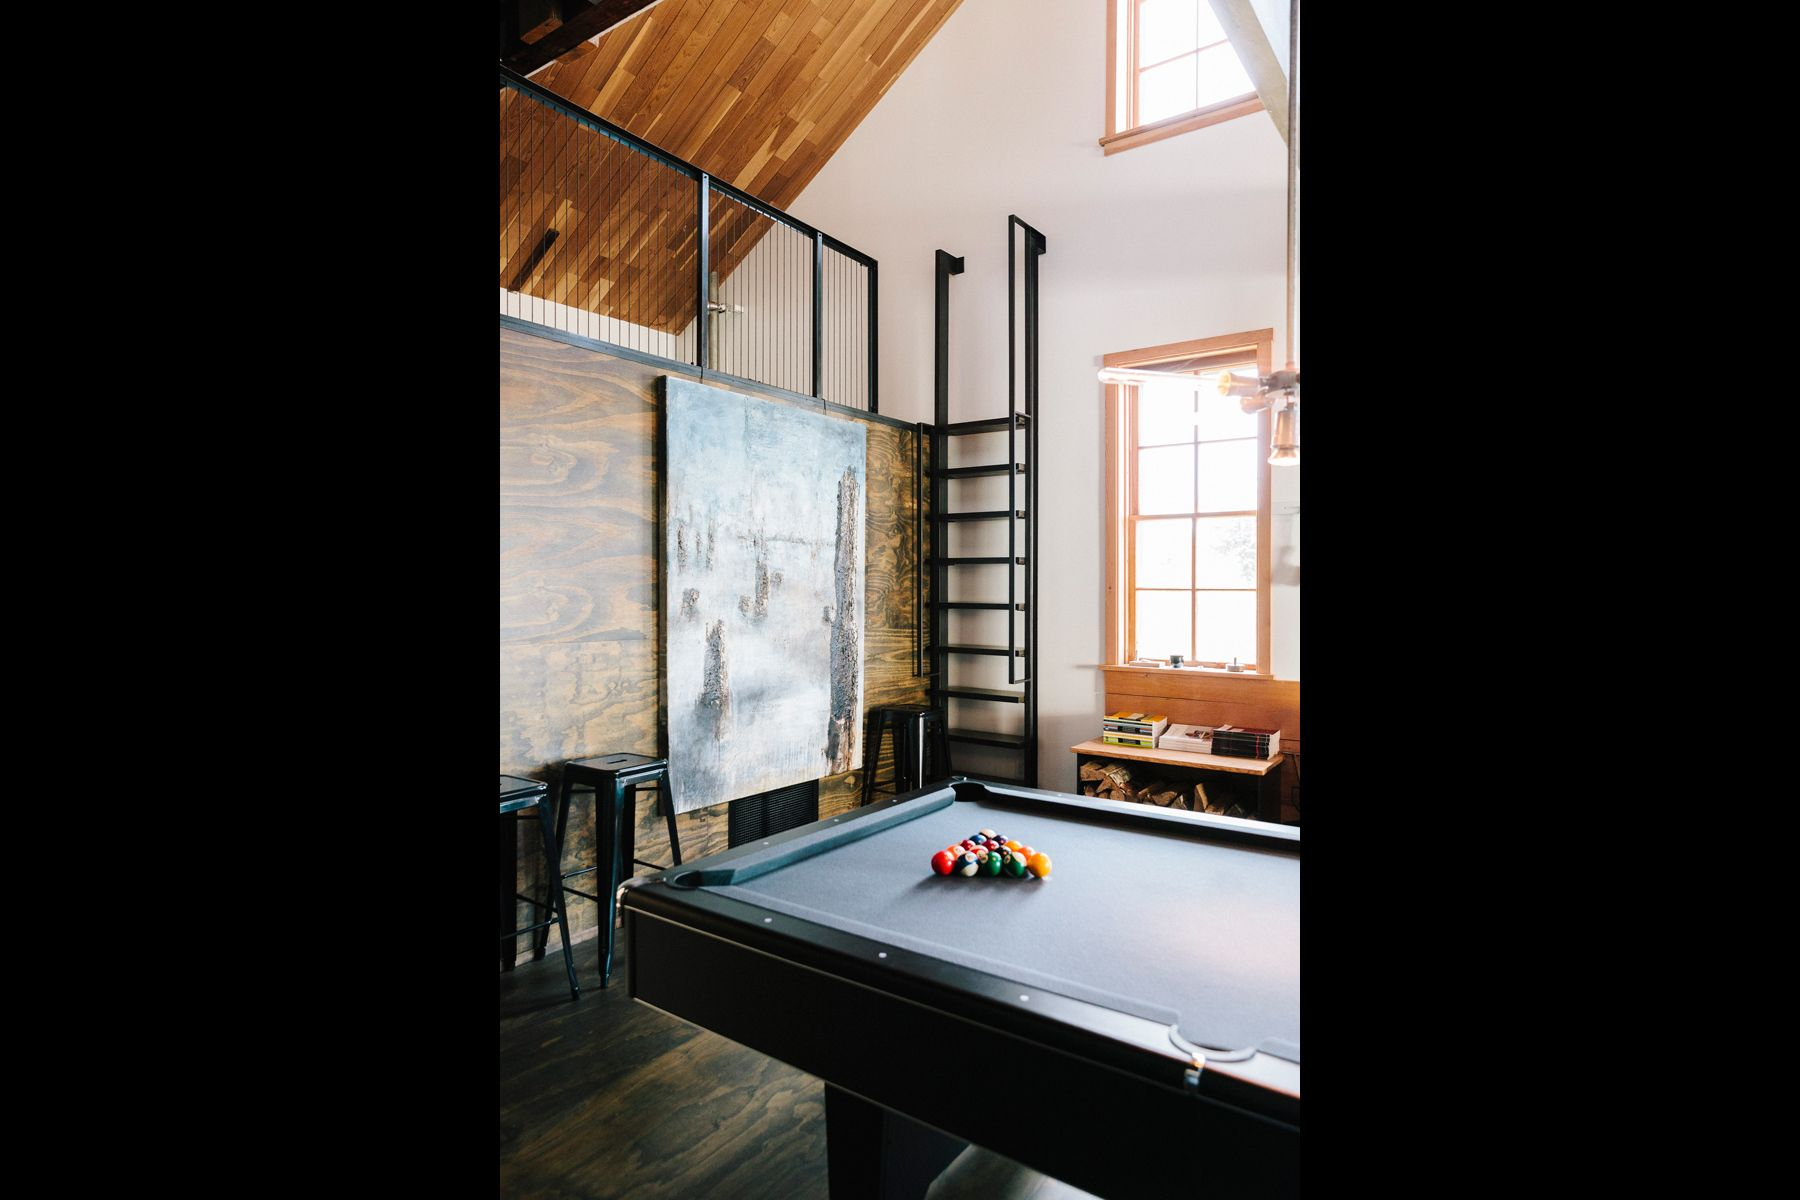 billiards, pool, 8 ball, loft, astoria